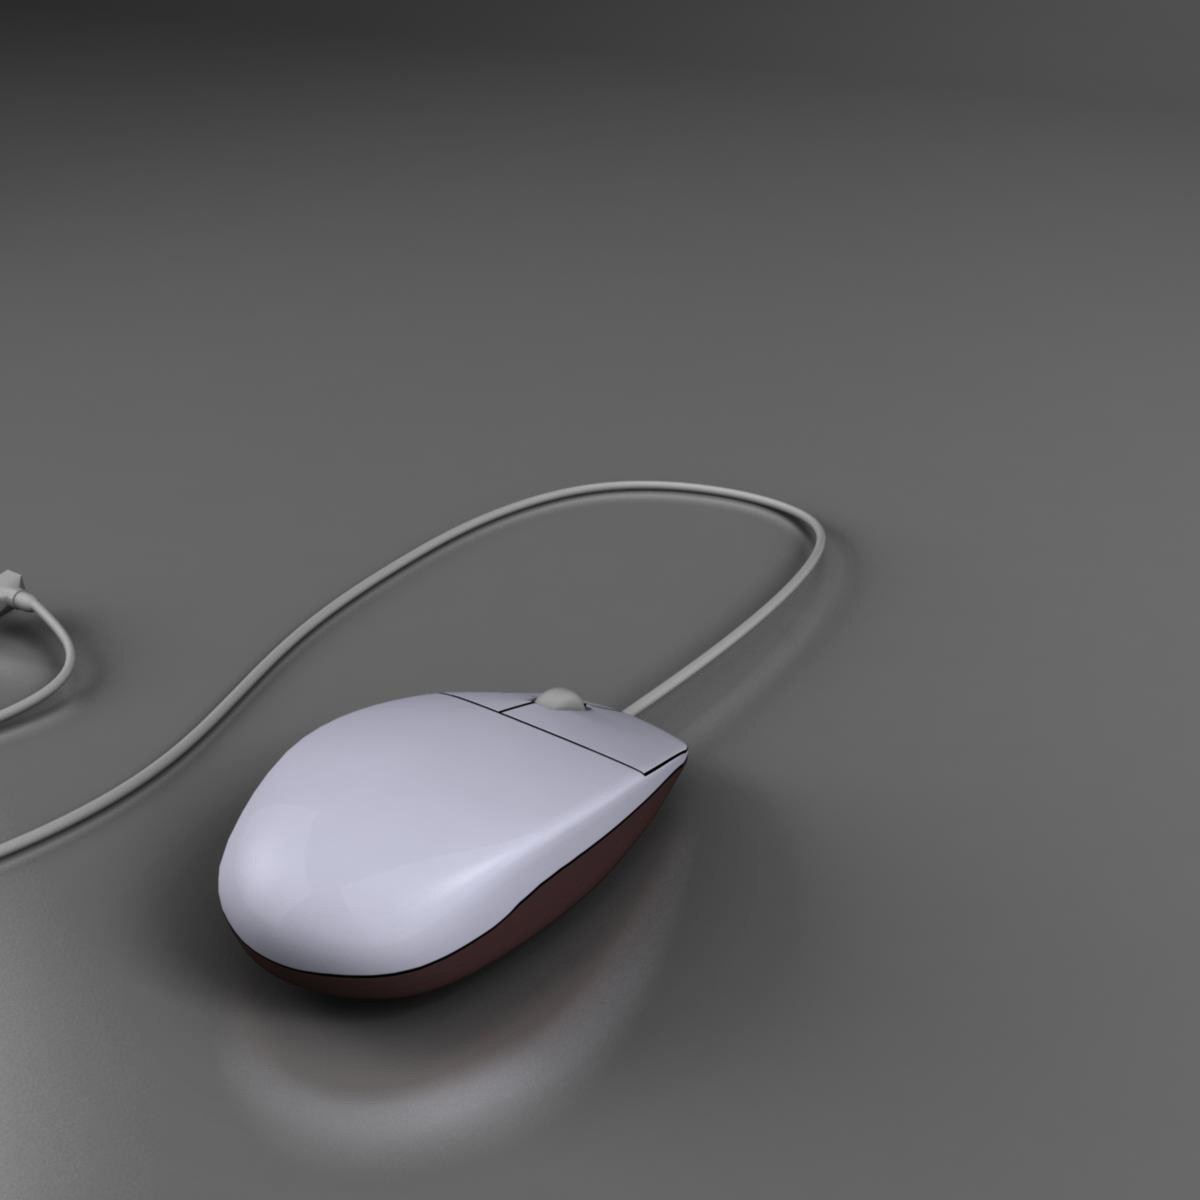 mouse 3d model 3ds max fbx ma mb obj 155942